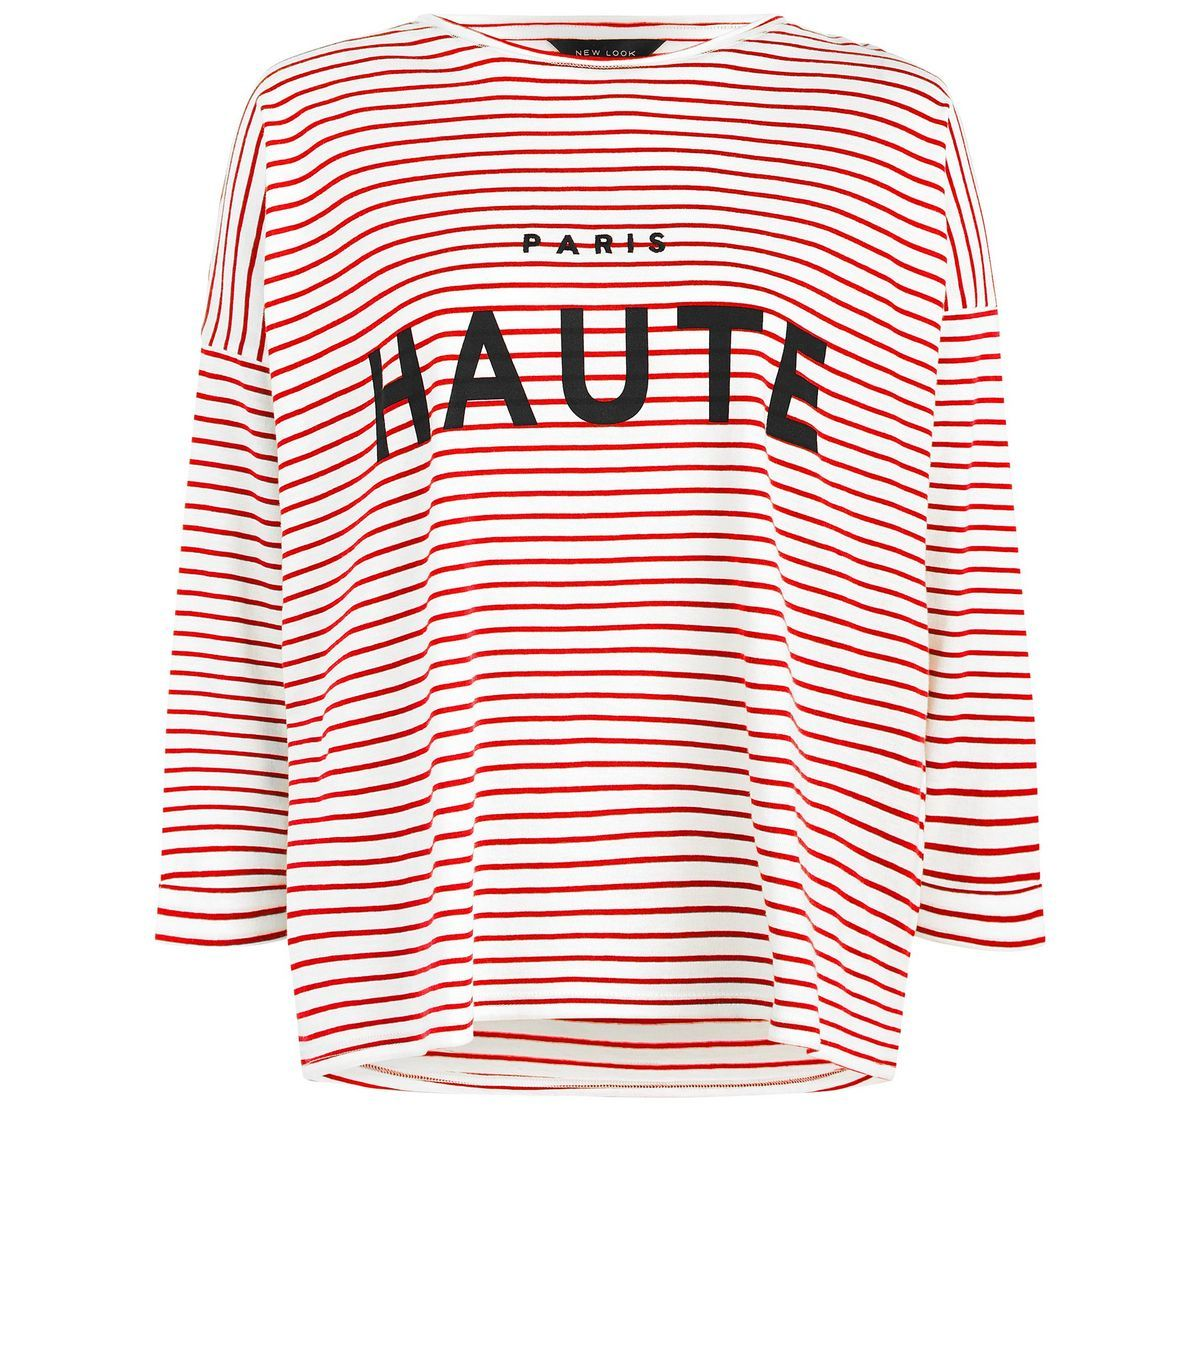 """Introduce chic style to your everyday wardrobe this season with this stripe print top. Team with skinny jeans and loafers to finish.- Rounded neckline- 3/4 sleeves- All over stripe print- 'Paris Haute' embroidered front- Soft cotton finish- Casual fit that is true to size- Margaux is 5'8.5""""/174cm and wears UK 10/EU 38/US 6"""